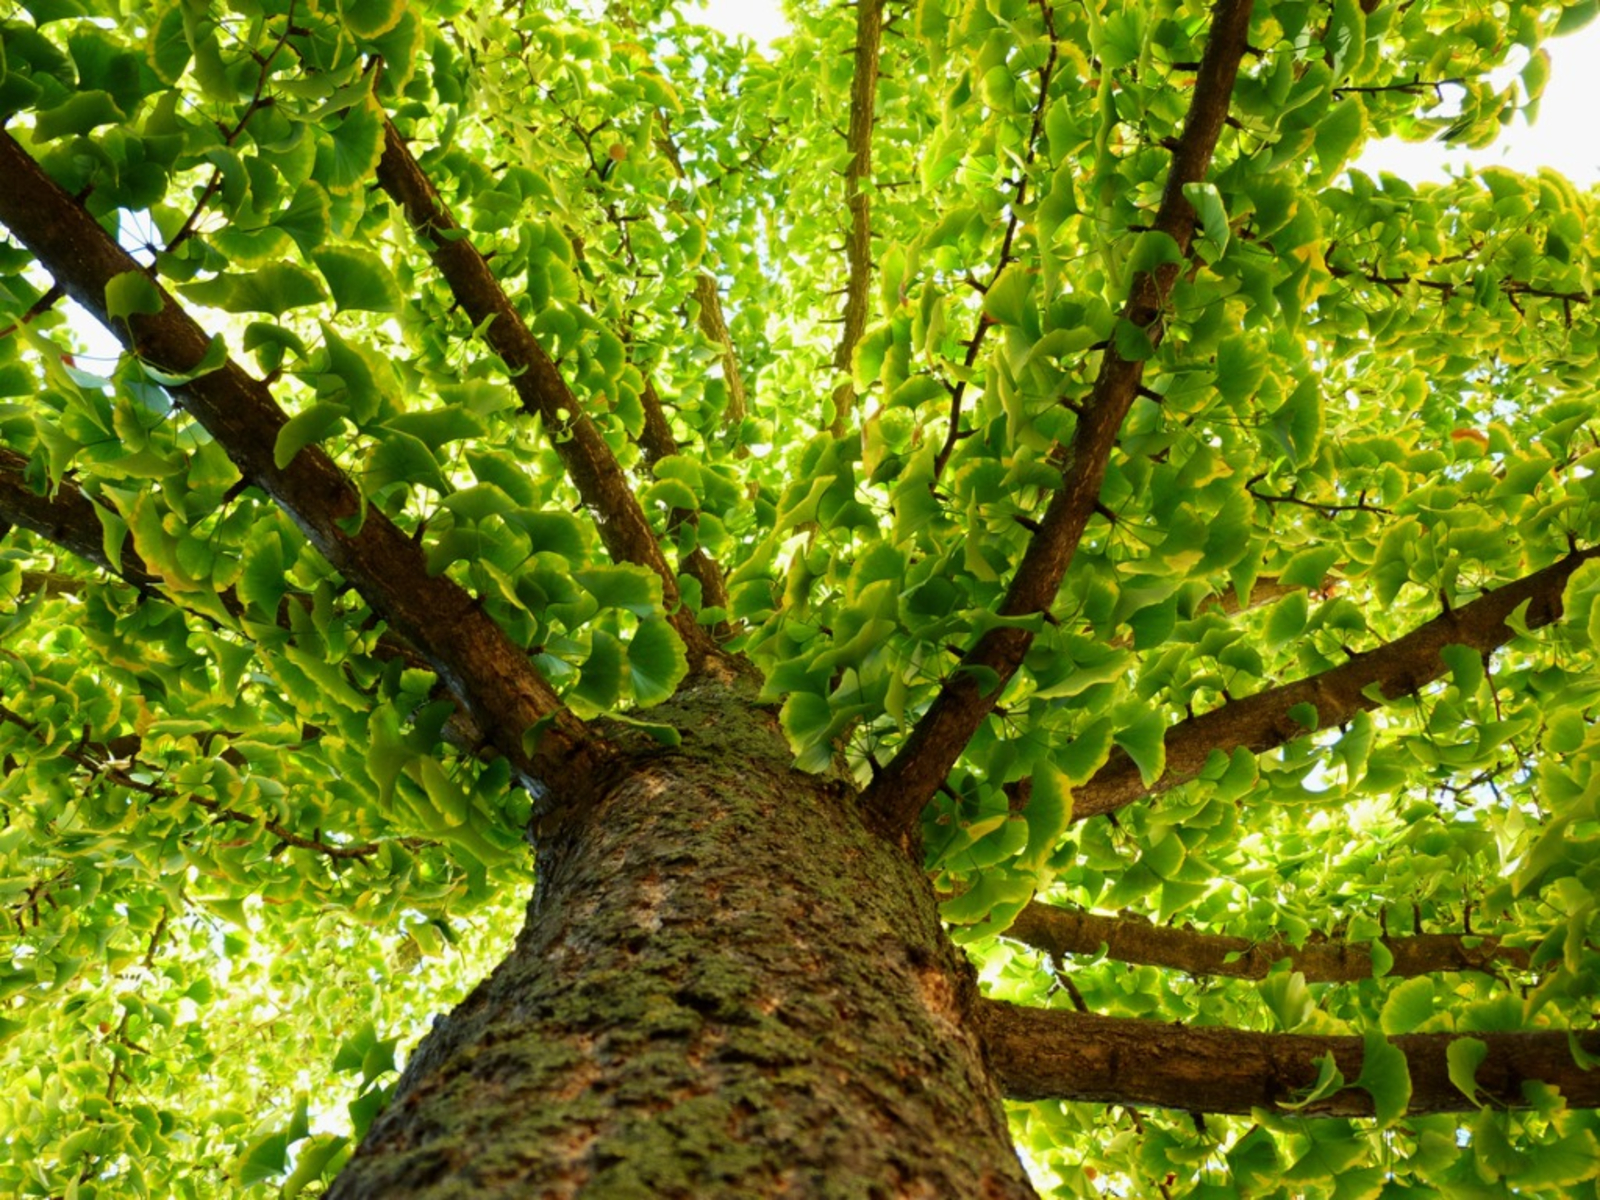 Ginkgo Biloba Benefits - Tips For Growing Ginkgo Trees